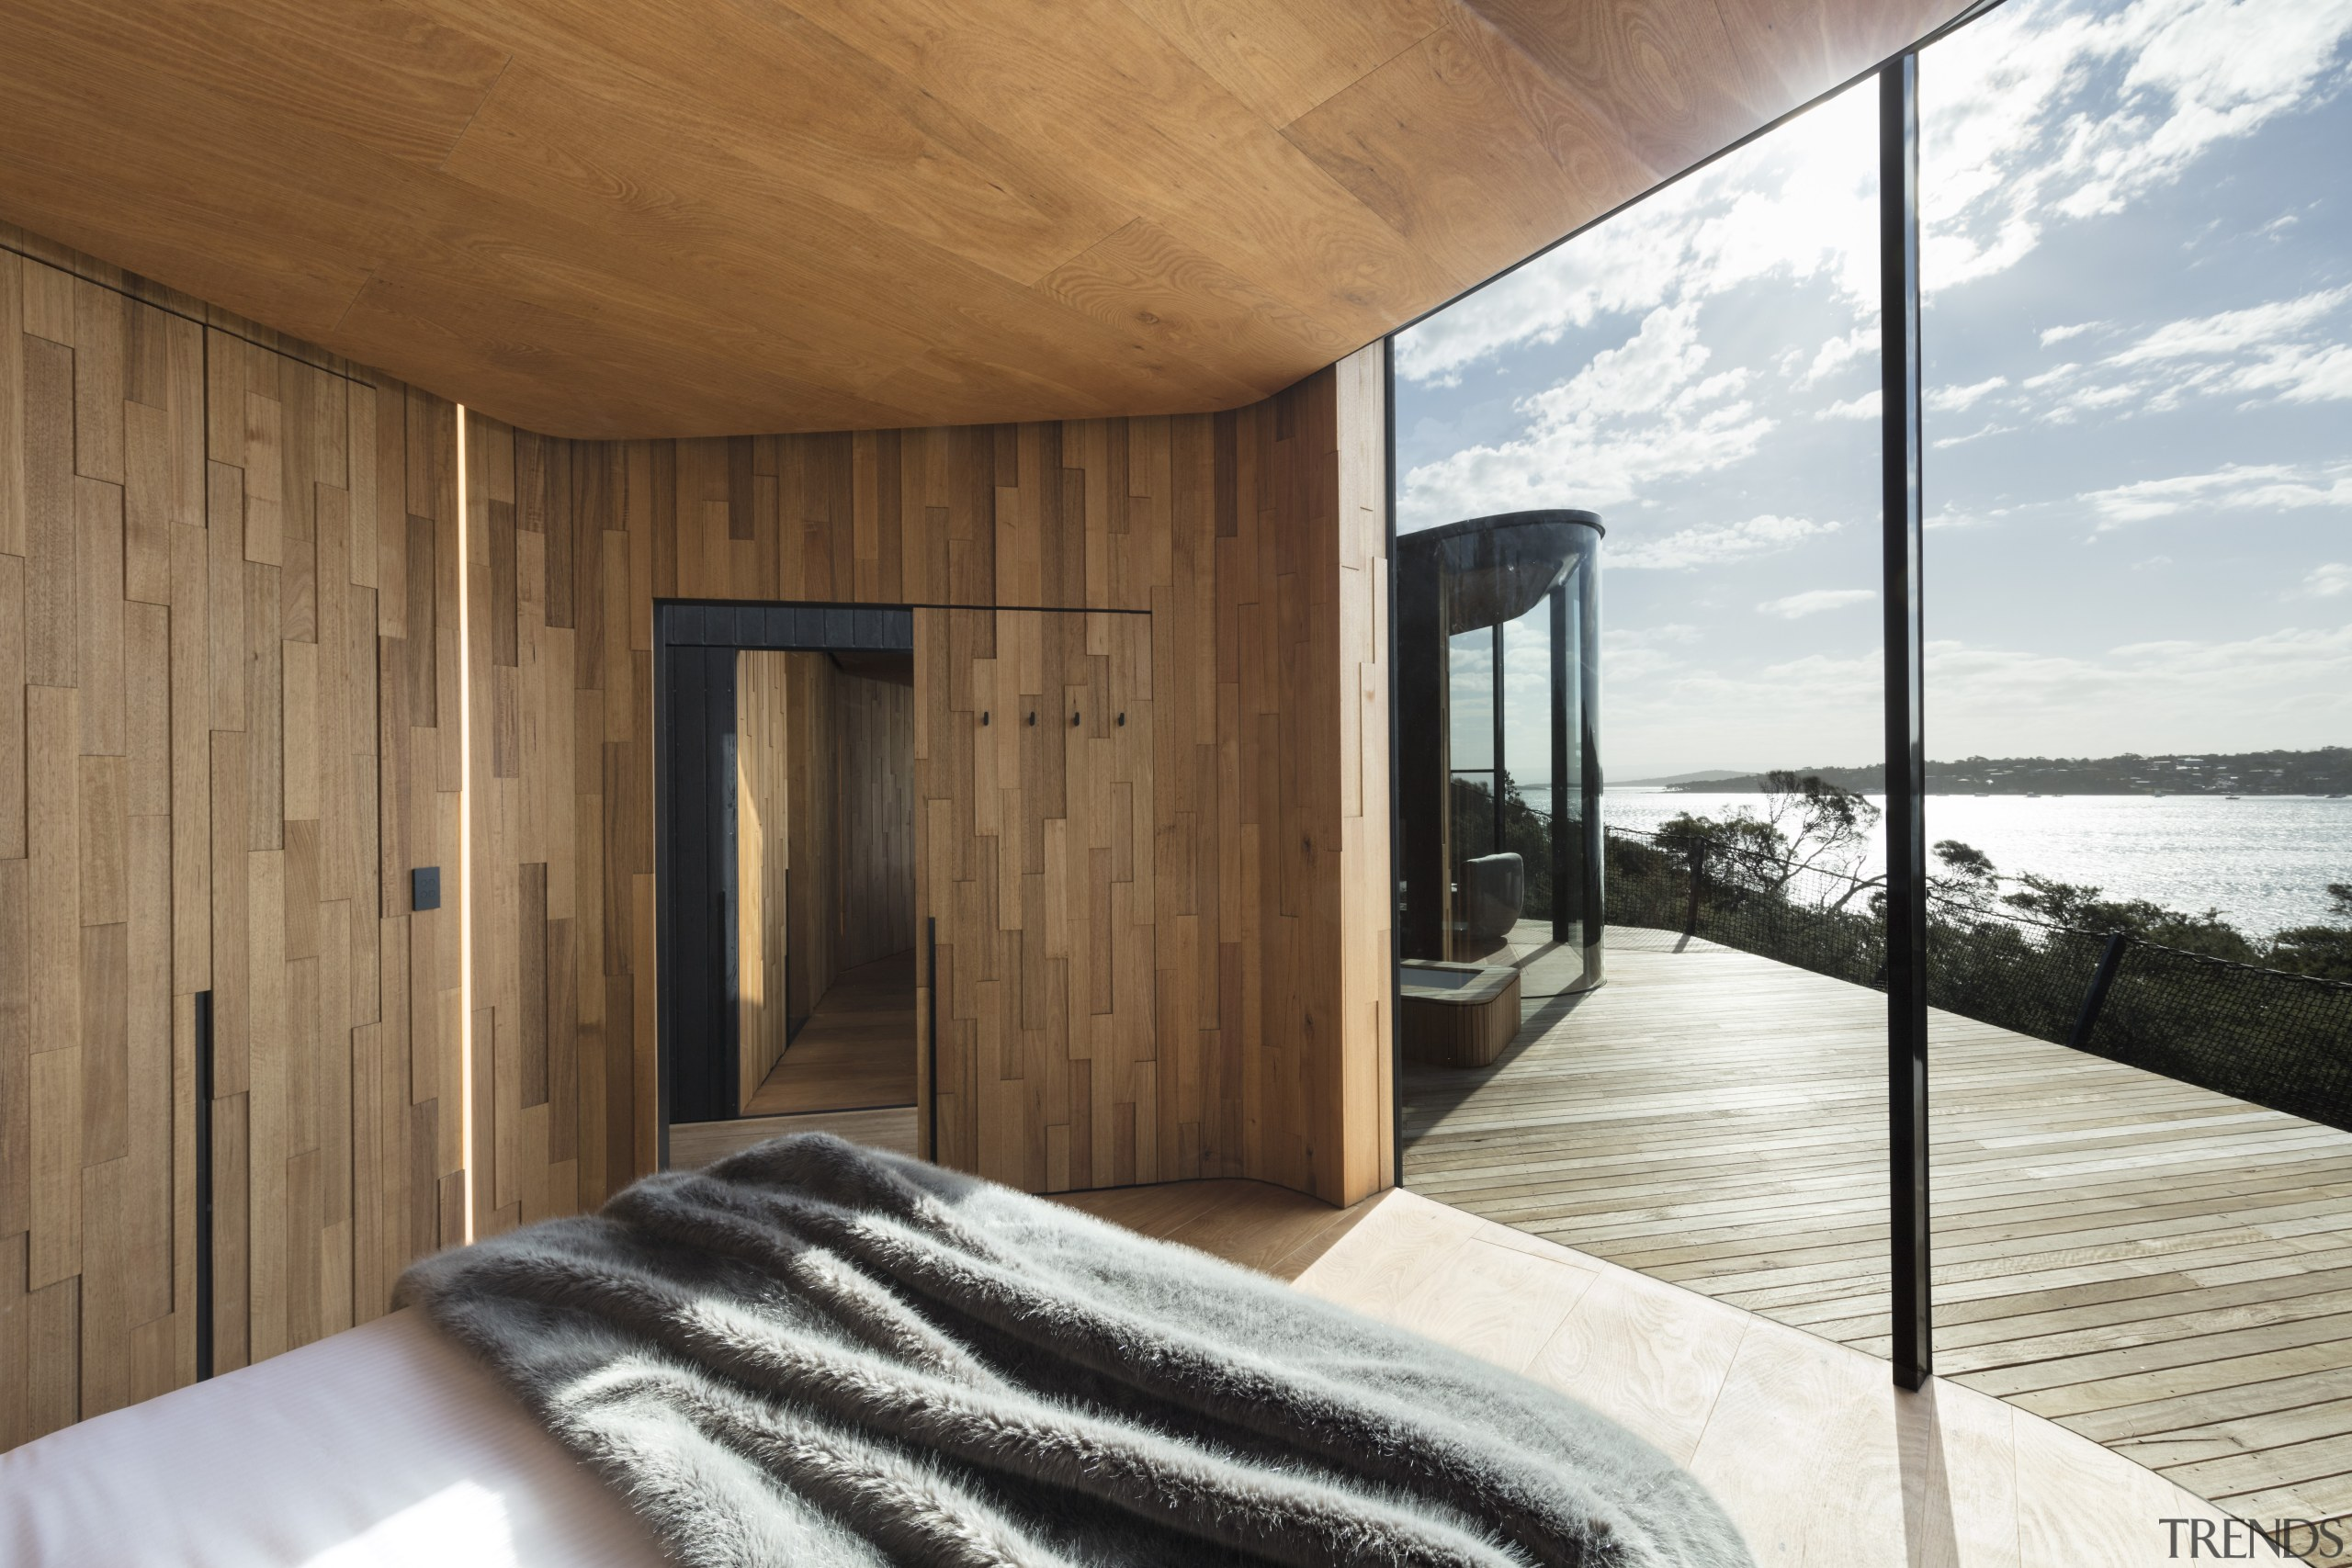 This coastal pavilion features local timber inside and